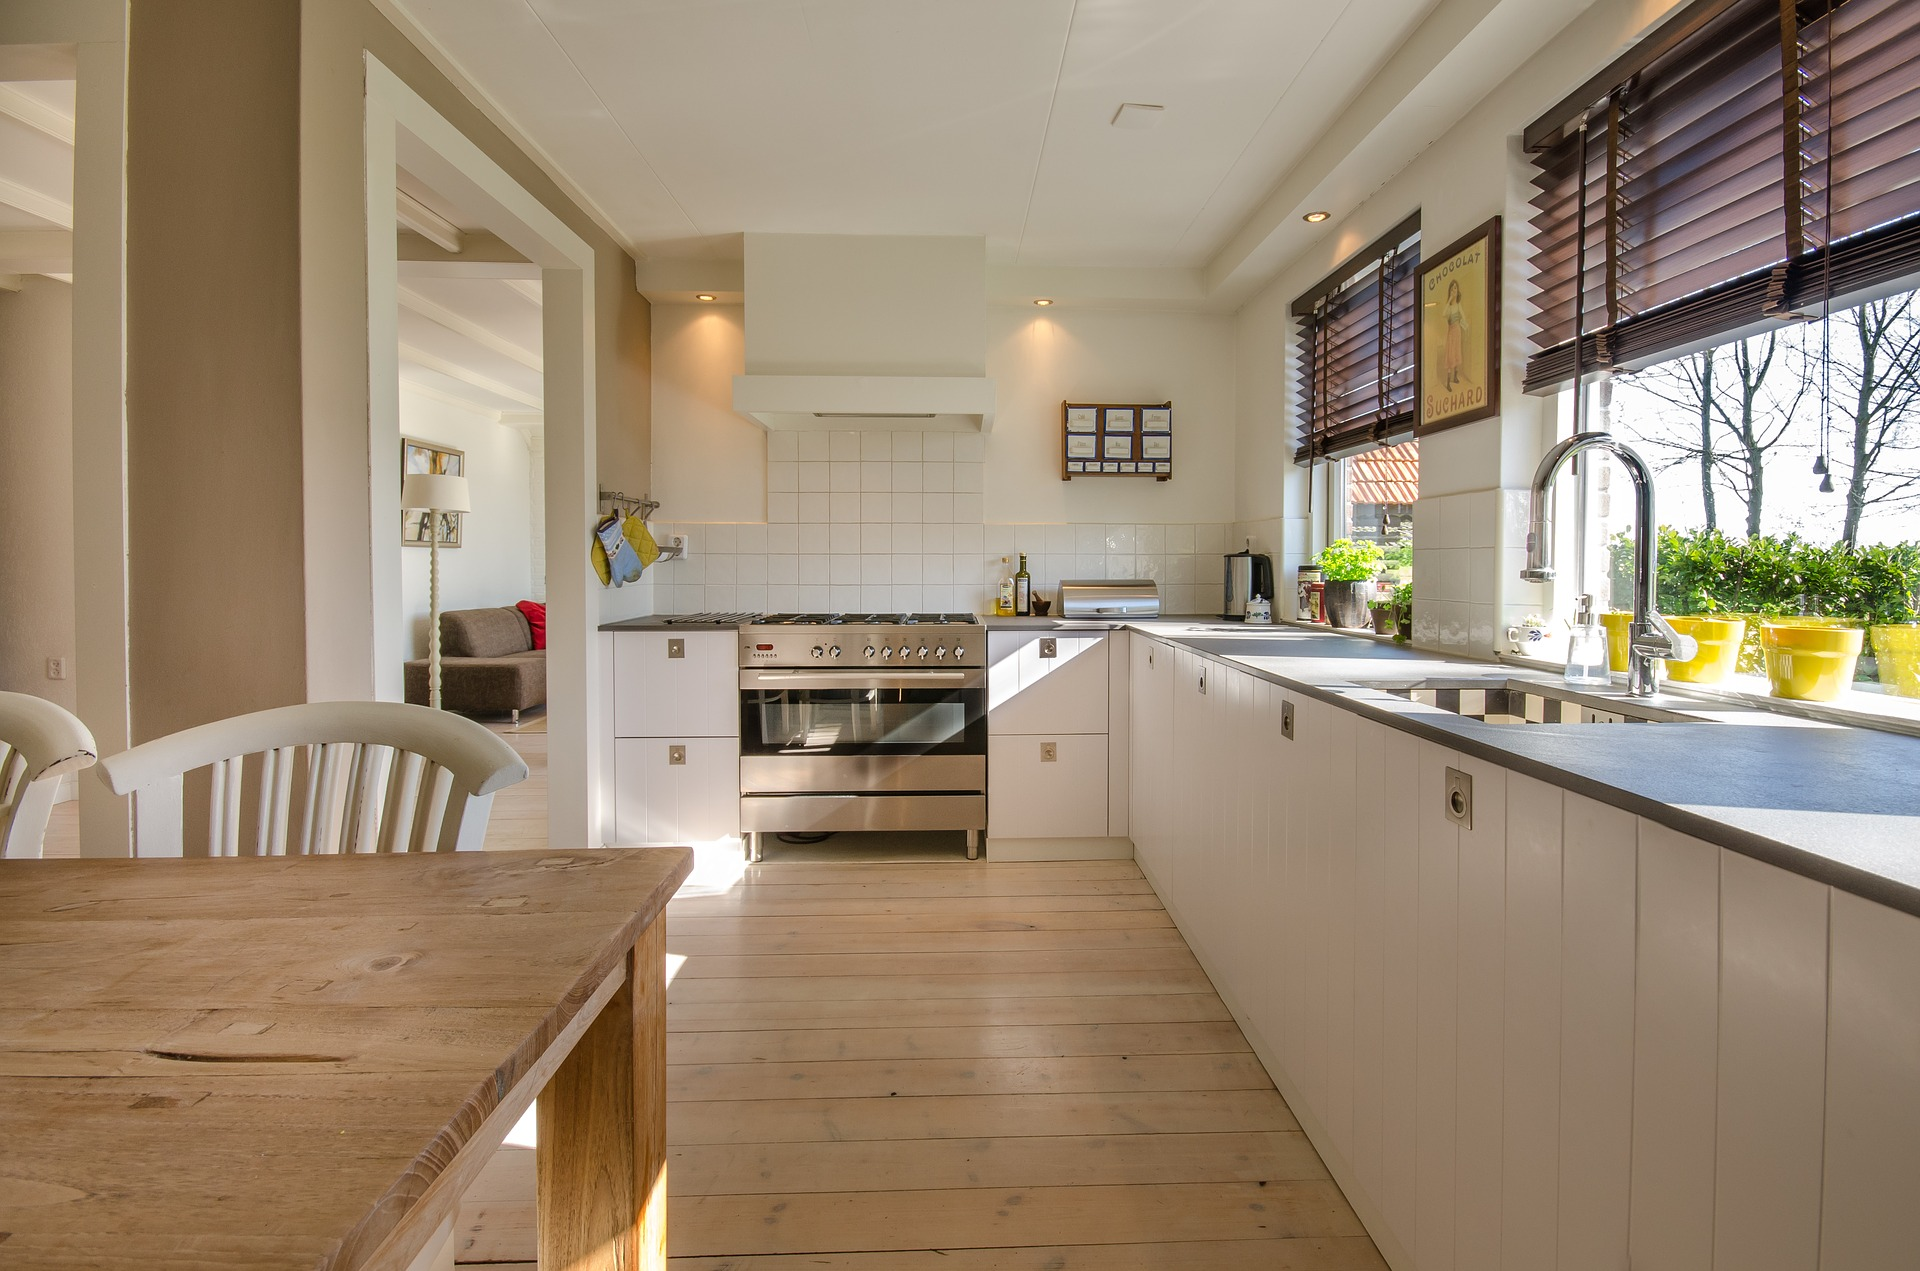 A large, ppen kitchen with white appliances and hardwood floors